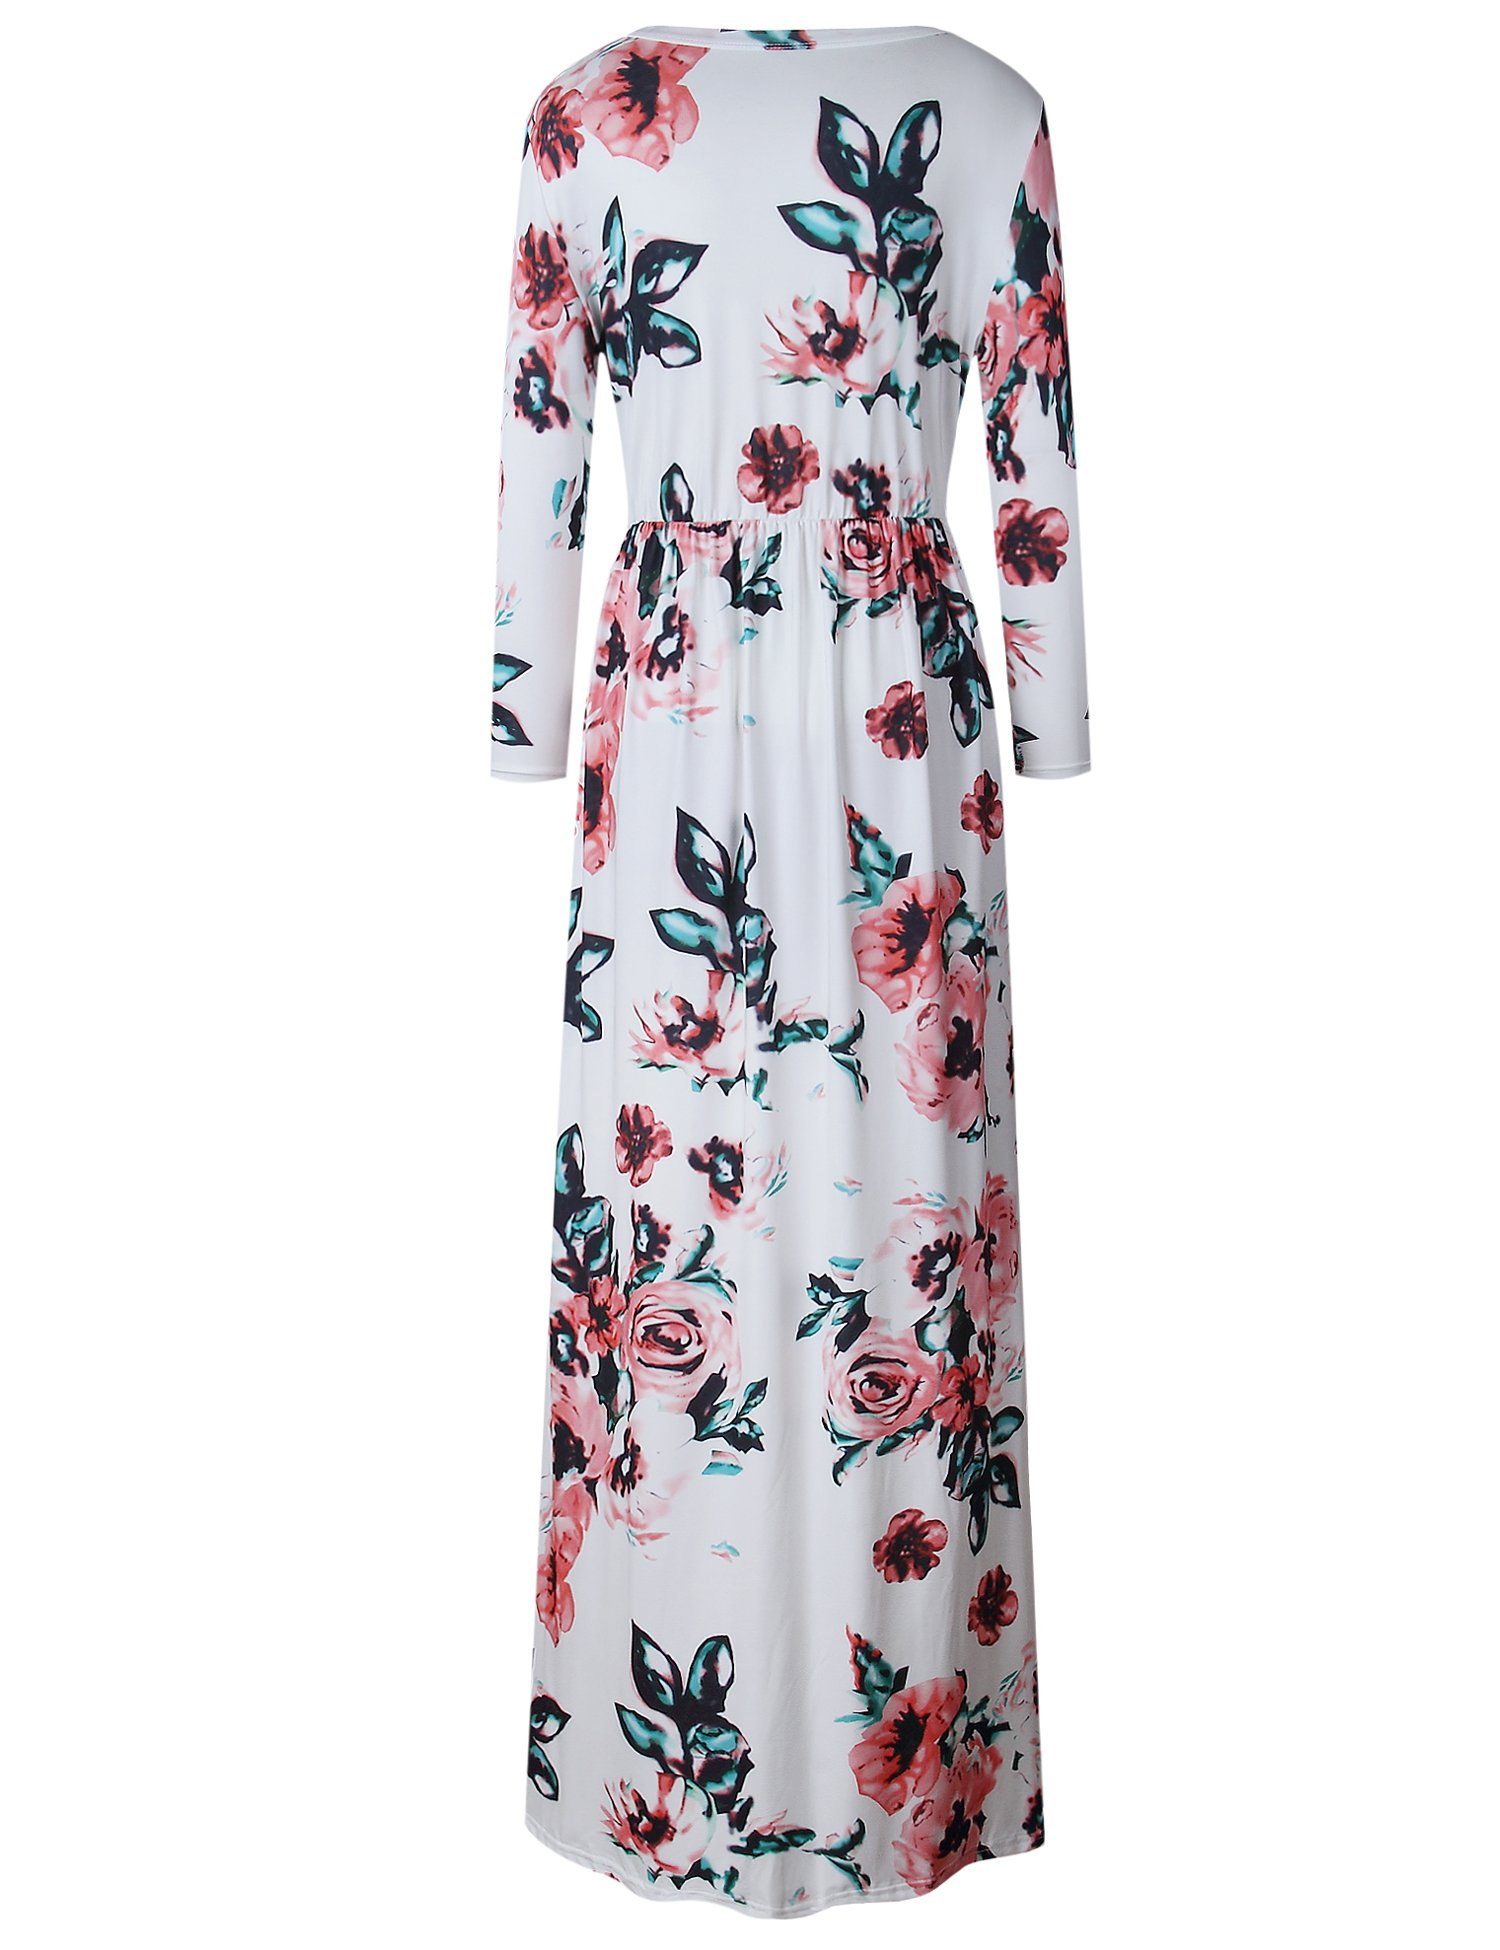 Murimia Women's Floral Print 3/4 Sleeve Empire Flower Maxi Casual Dress With Pocketed, White, Small by Murimia (Image #3)